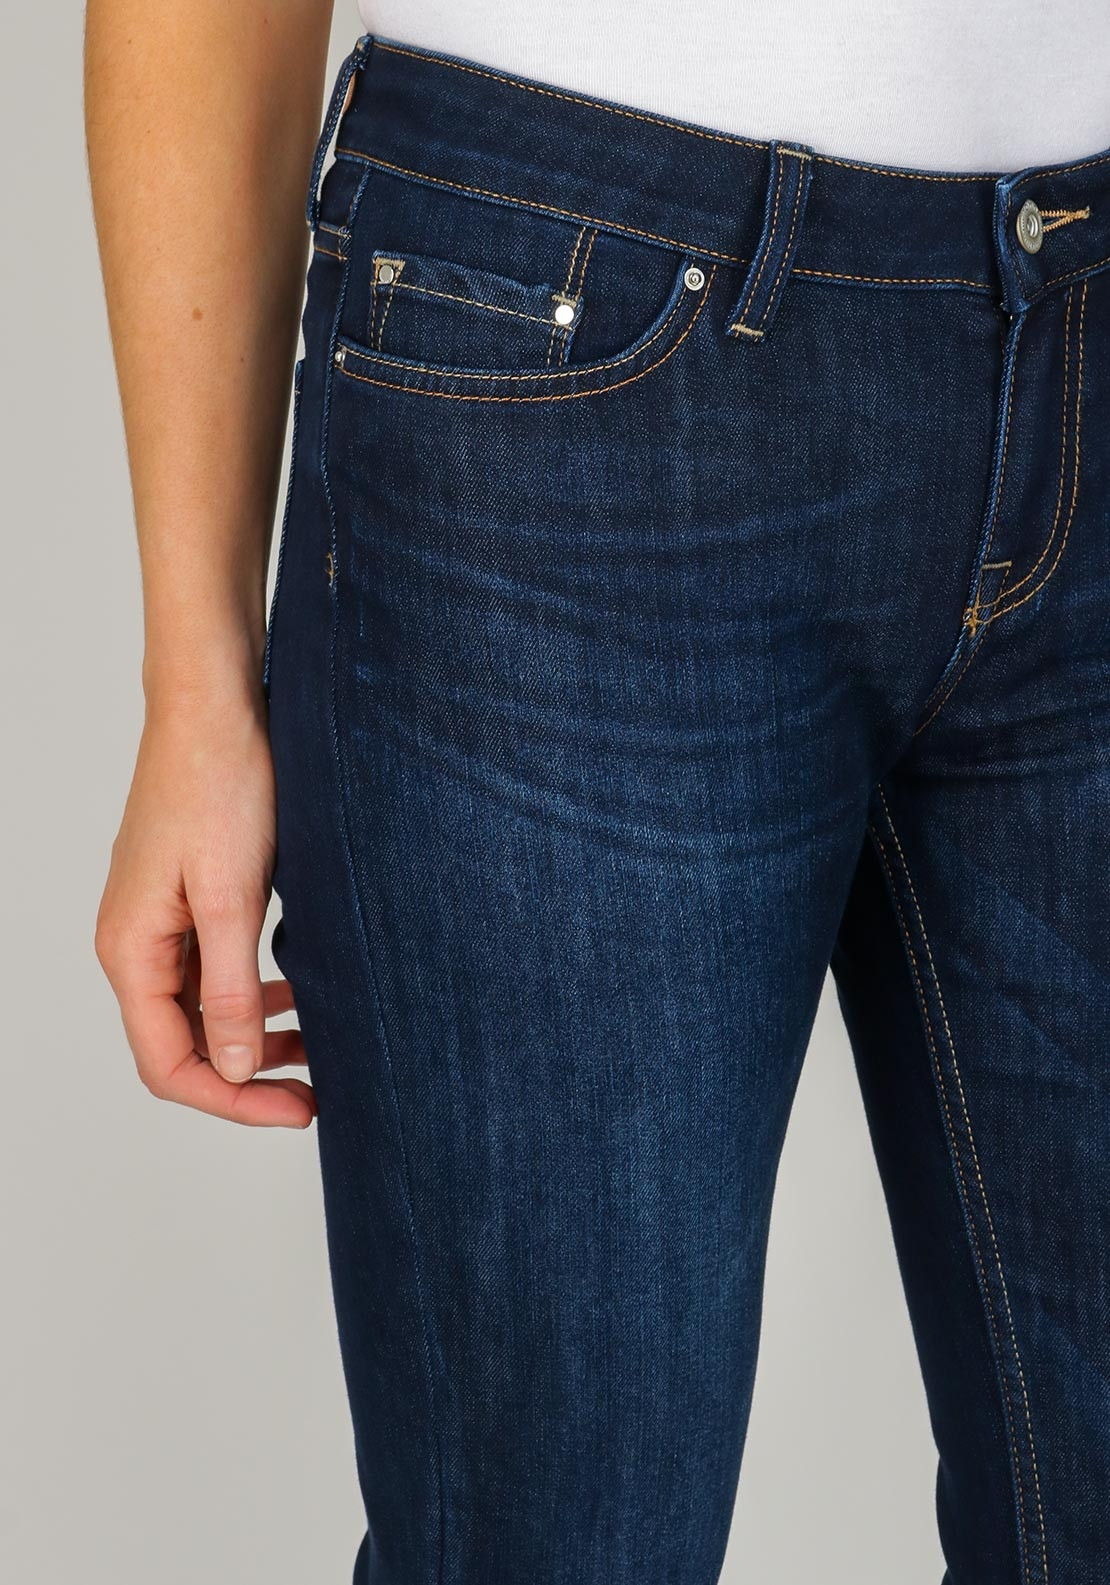 818cf2e7 Tommy Hilfiger Womens Rome Straight Leg Jeans, Navy. Be the first to review  this product